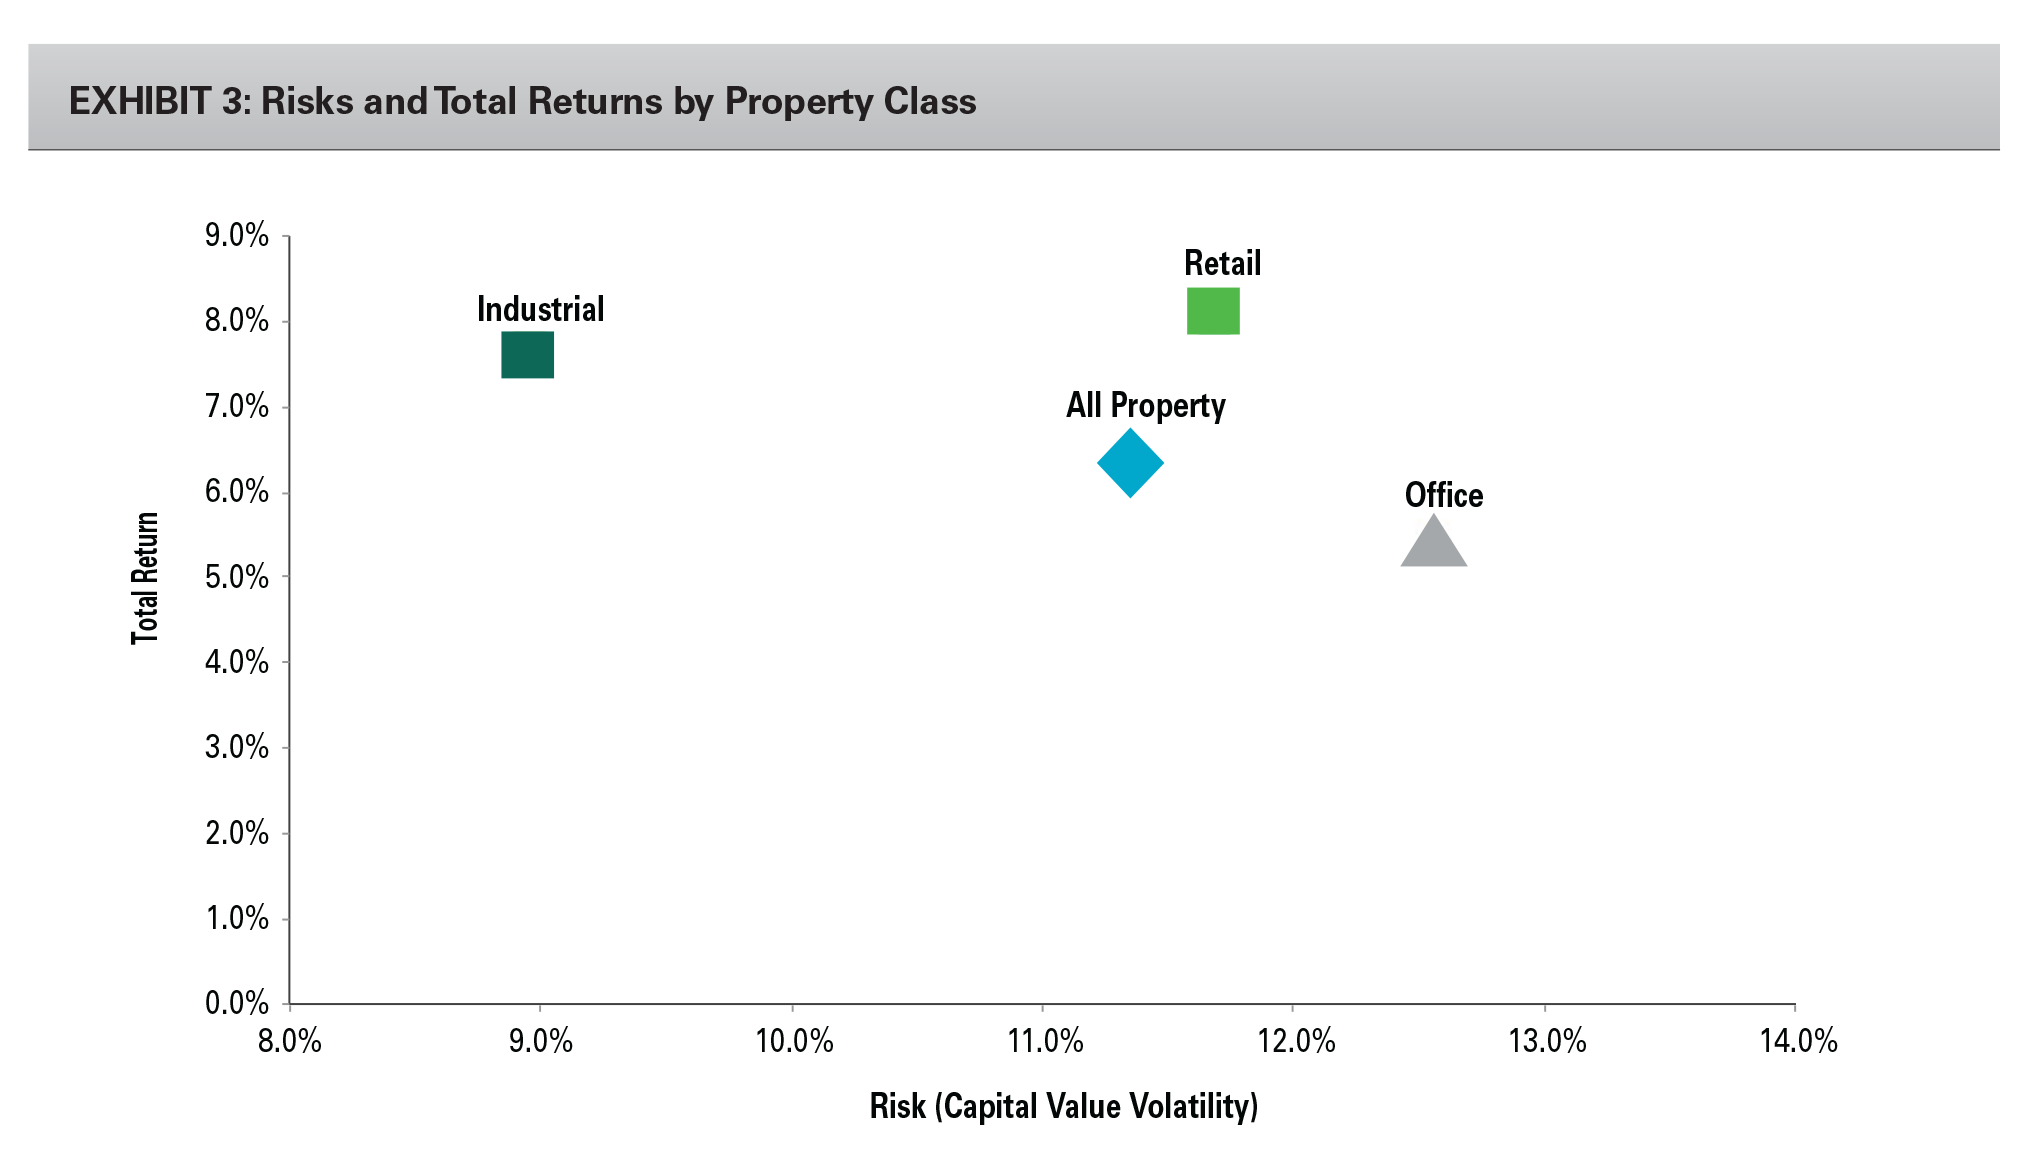 EXHIBIT 3: Risks and Total Returns by Property Class